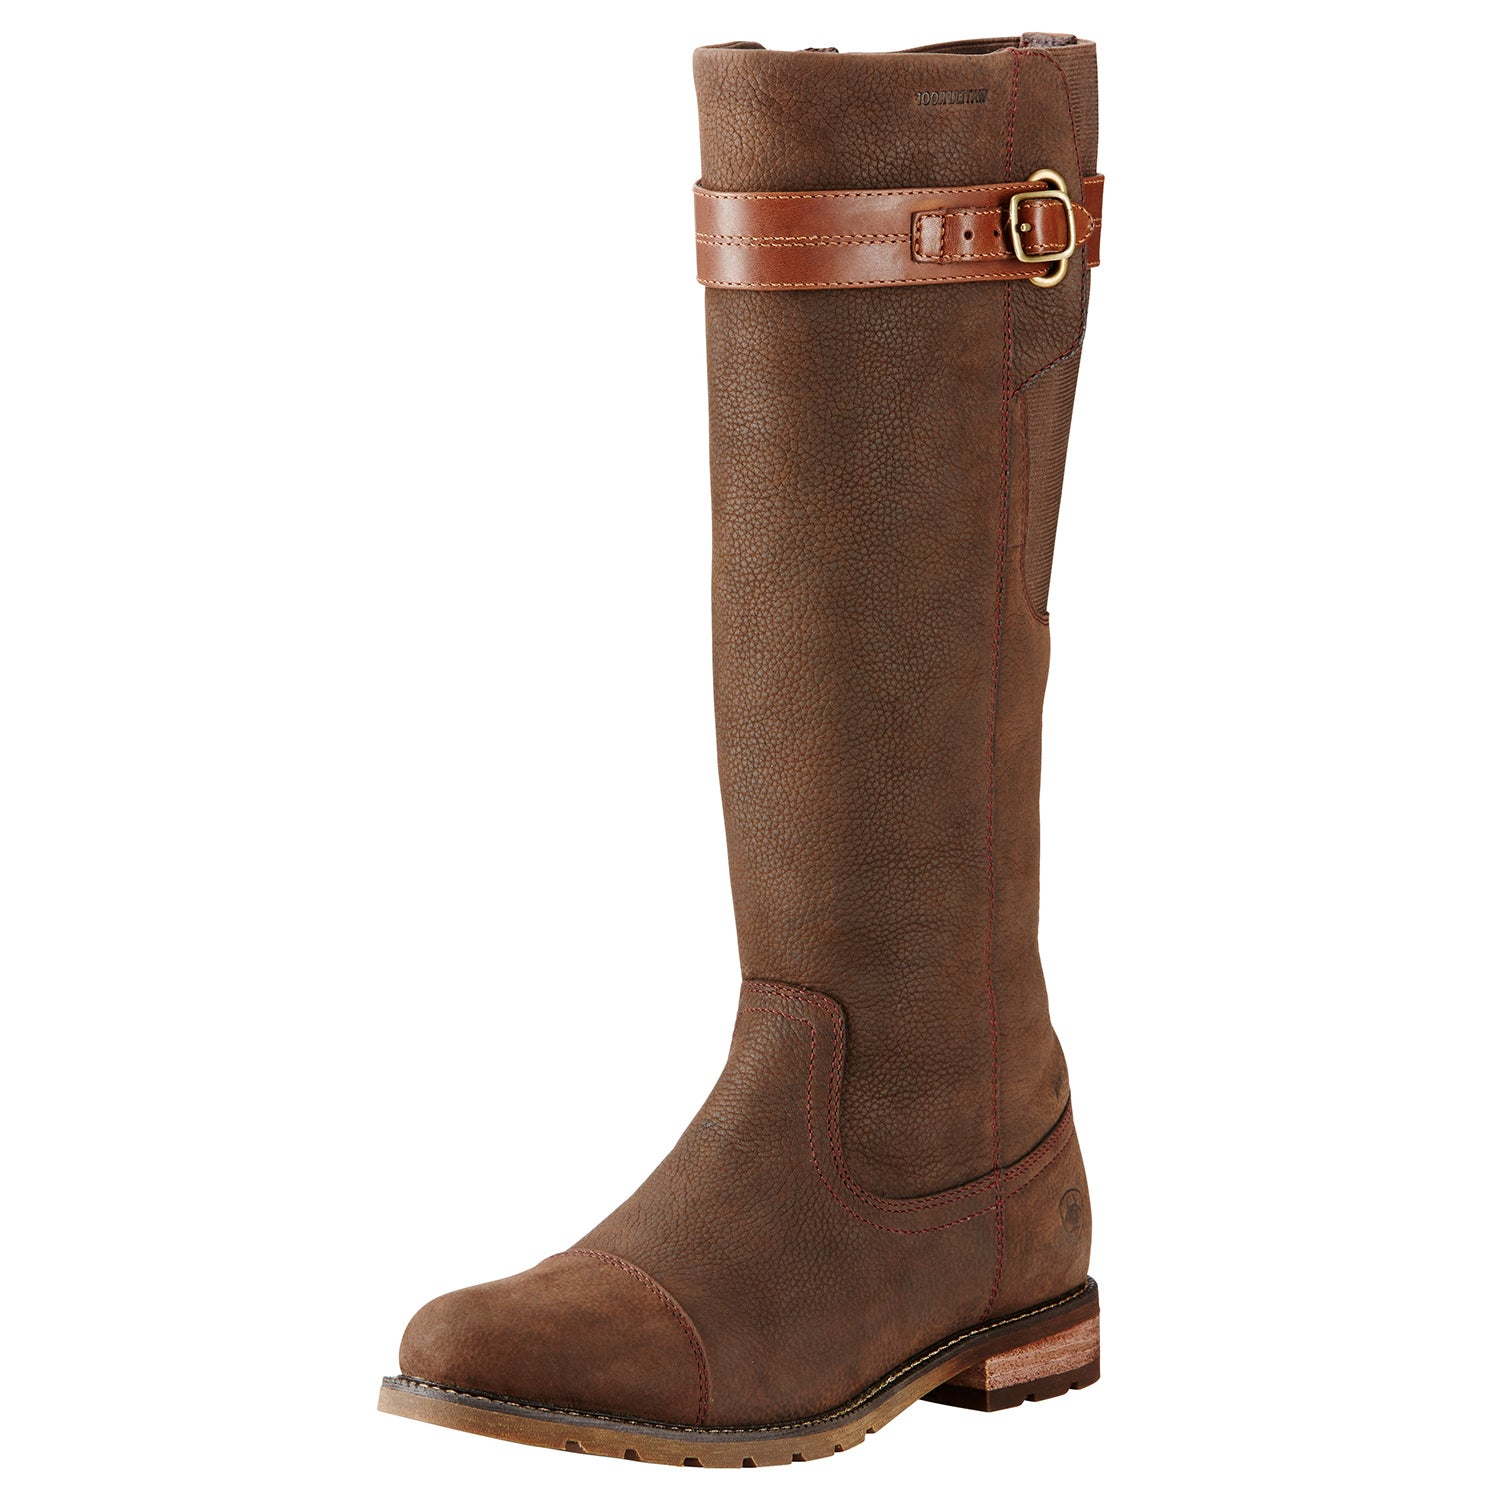 Ariat Stoneleigh H20 Ladies Country Boots